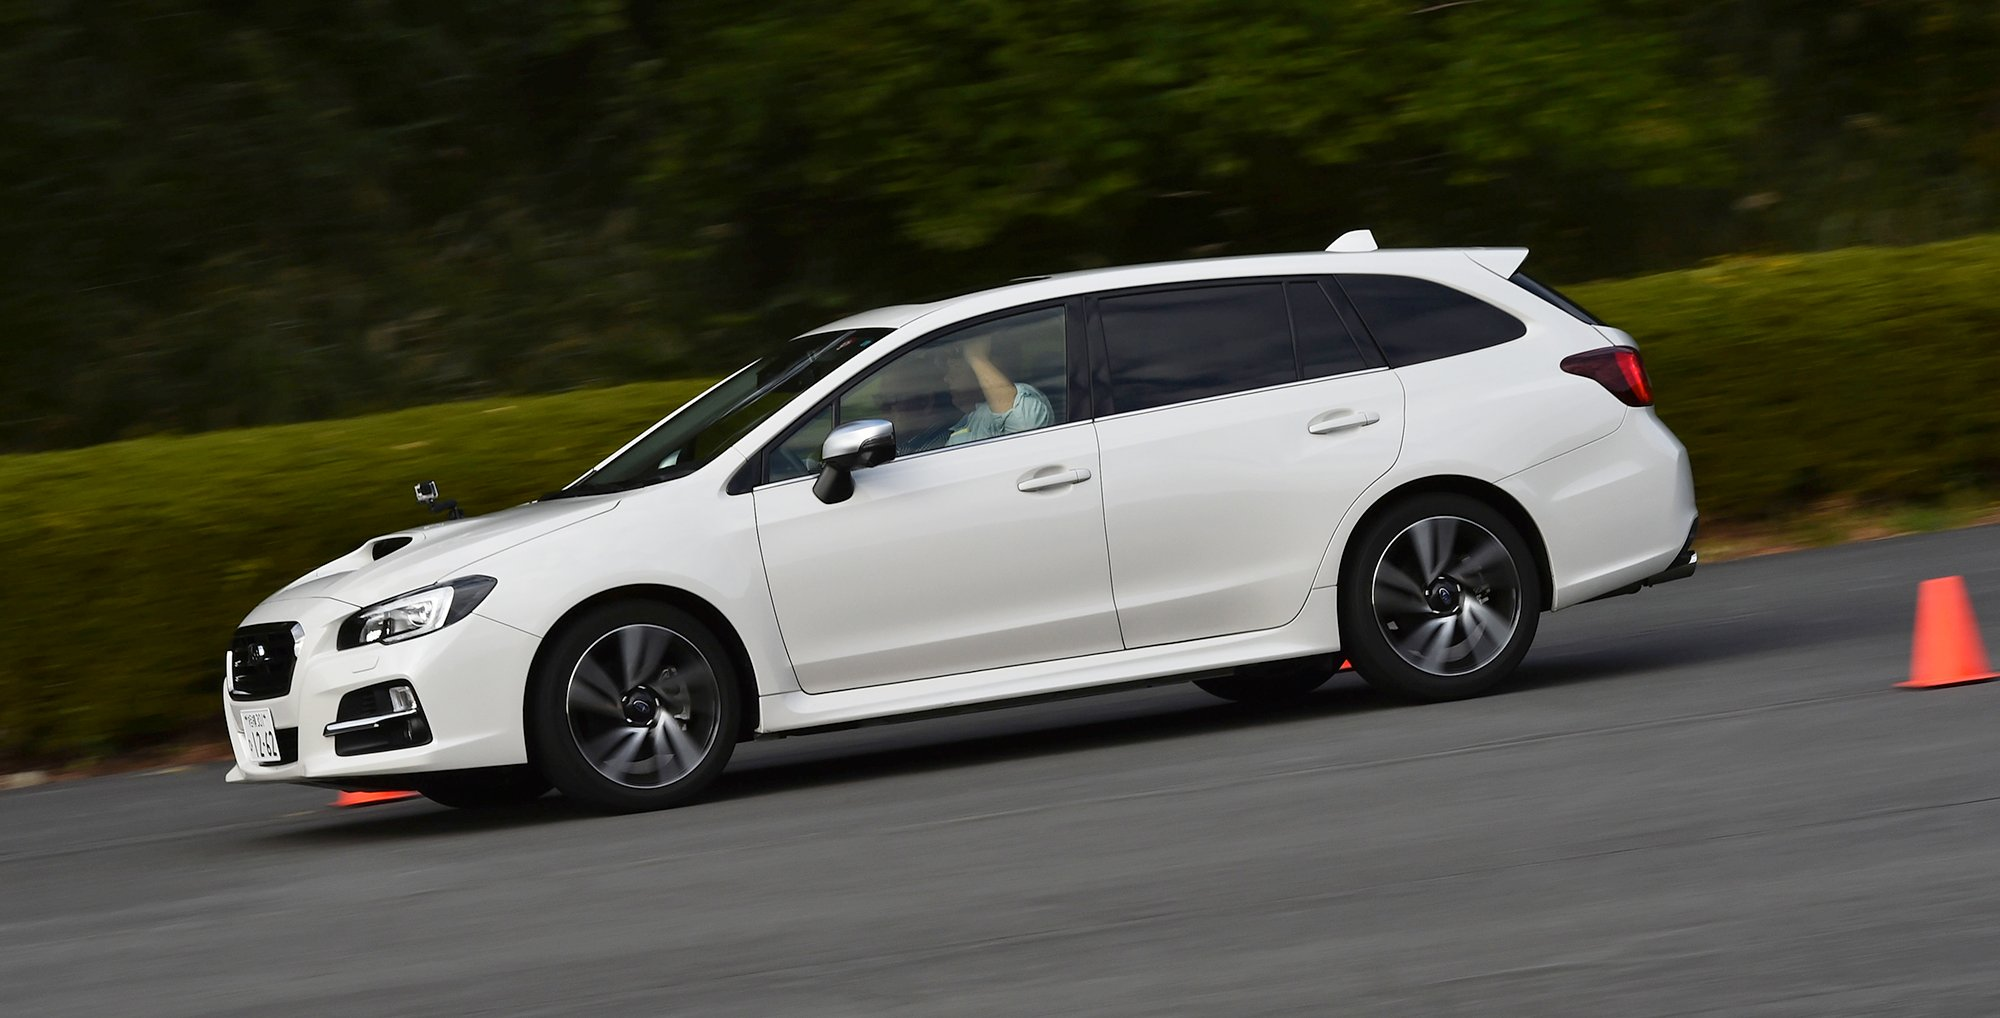 Gt >> 2016 Subaru Levorg GT Review - photos | CarAdvice